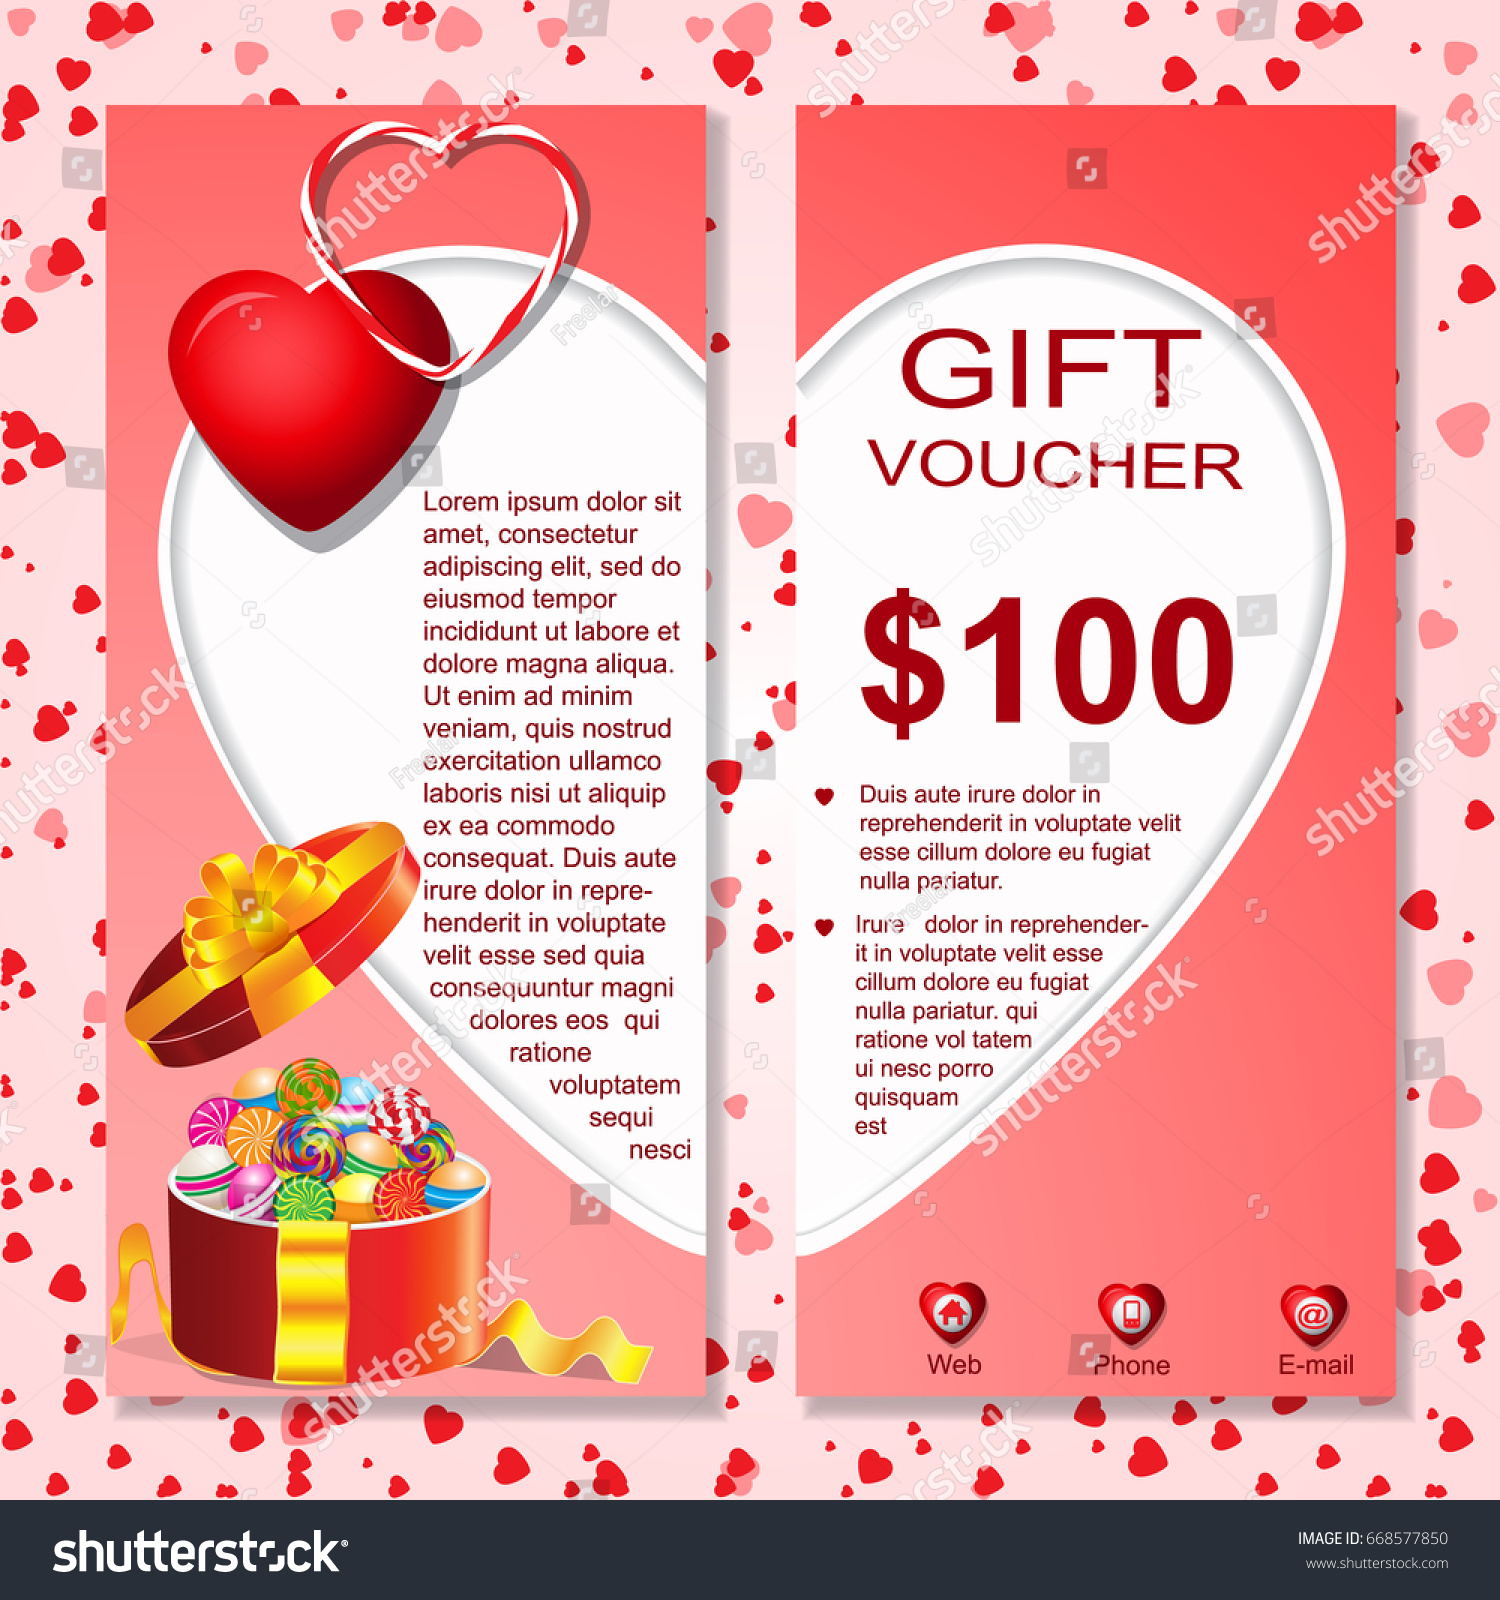 Gift cardvouchercertificate template heart gift cardvouchercertificate template with heart patternborderboxribbons 1betcityfo Image collections